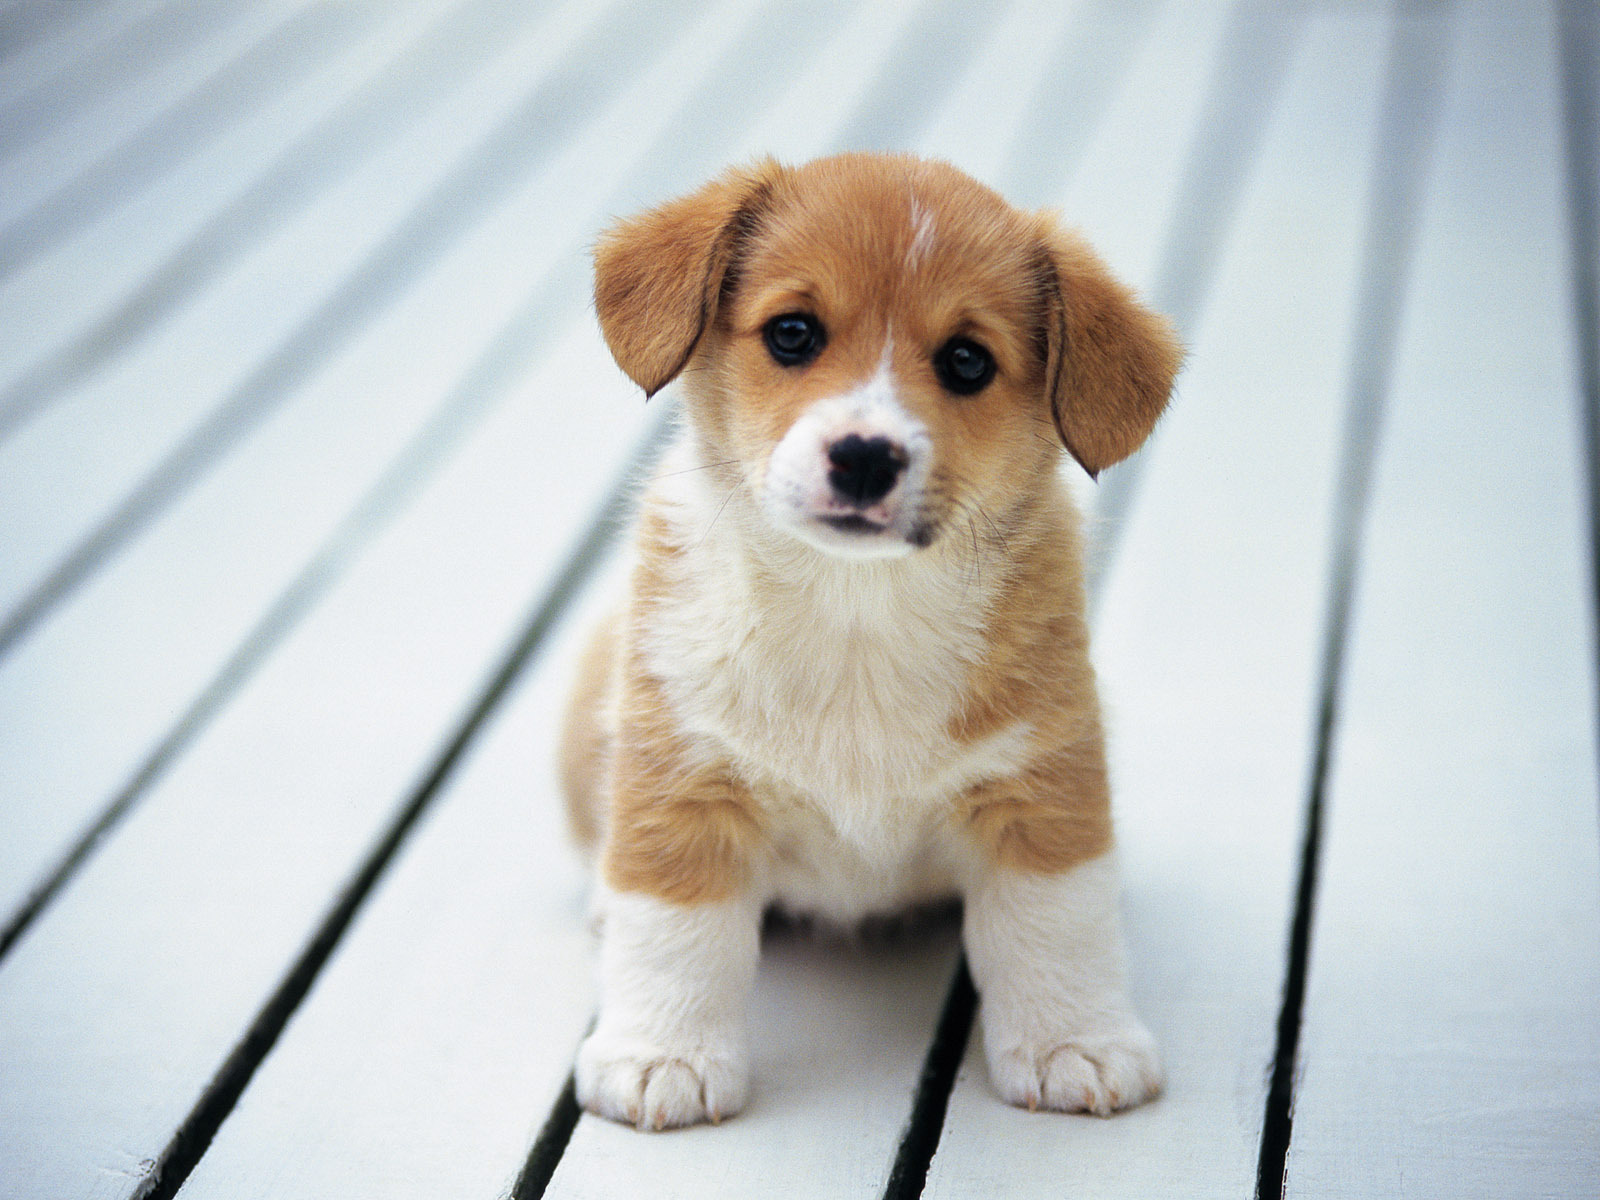 the puppy club images so cute puppy HD wallpaper and background